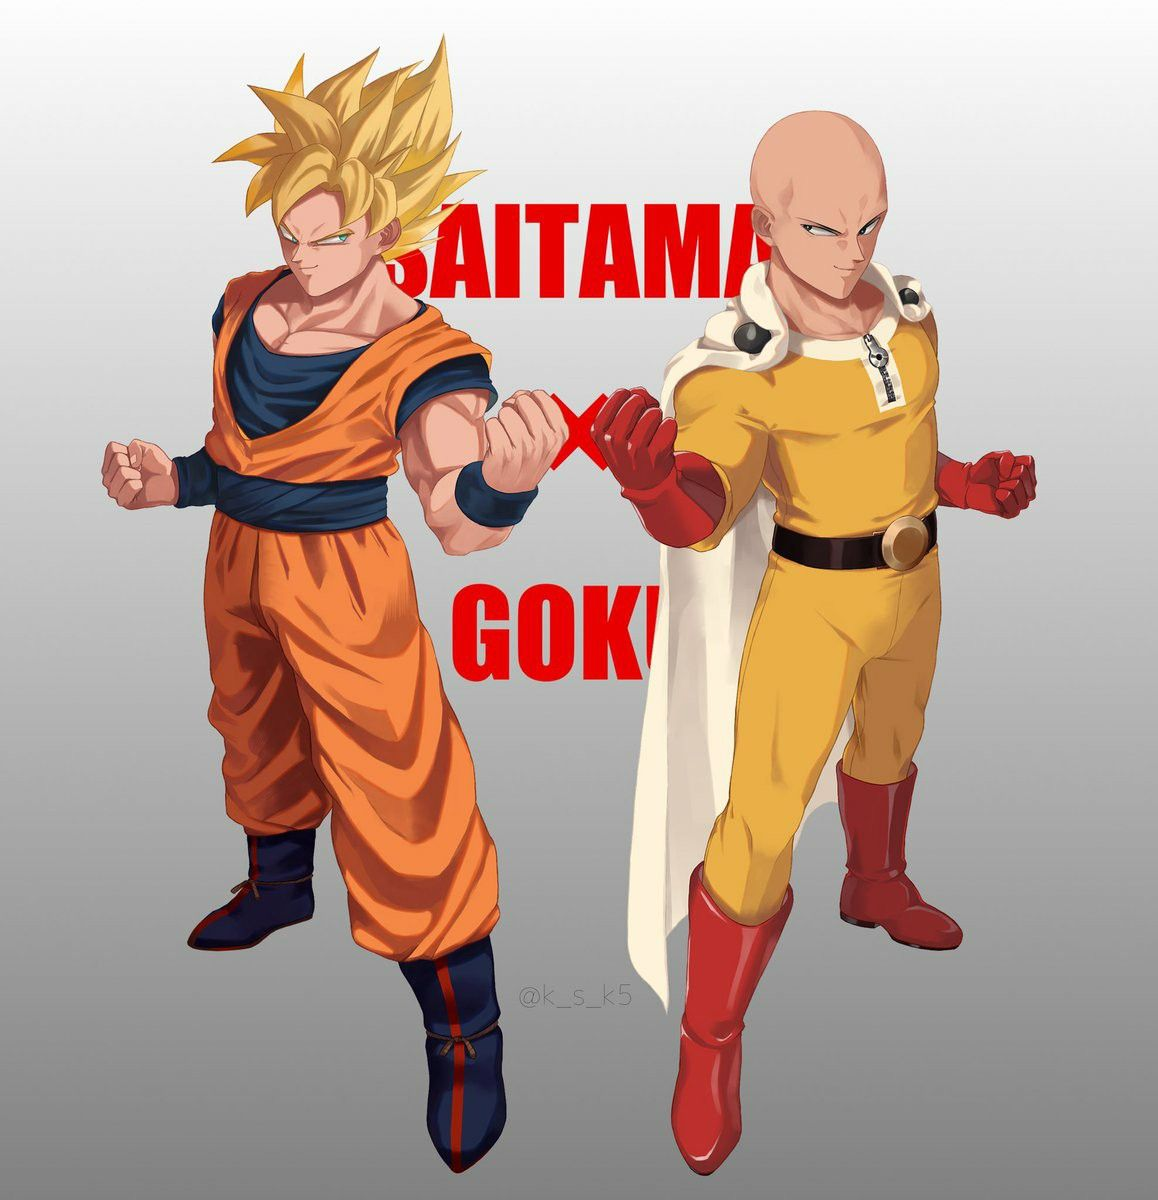 Pin By Ivan On Anime Crossovers Dragon Ball Gt Anime Dragon Ball Anime Crossover